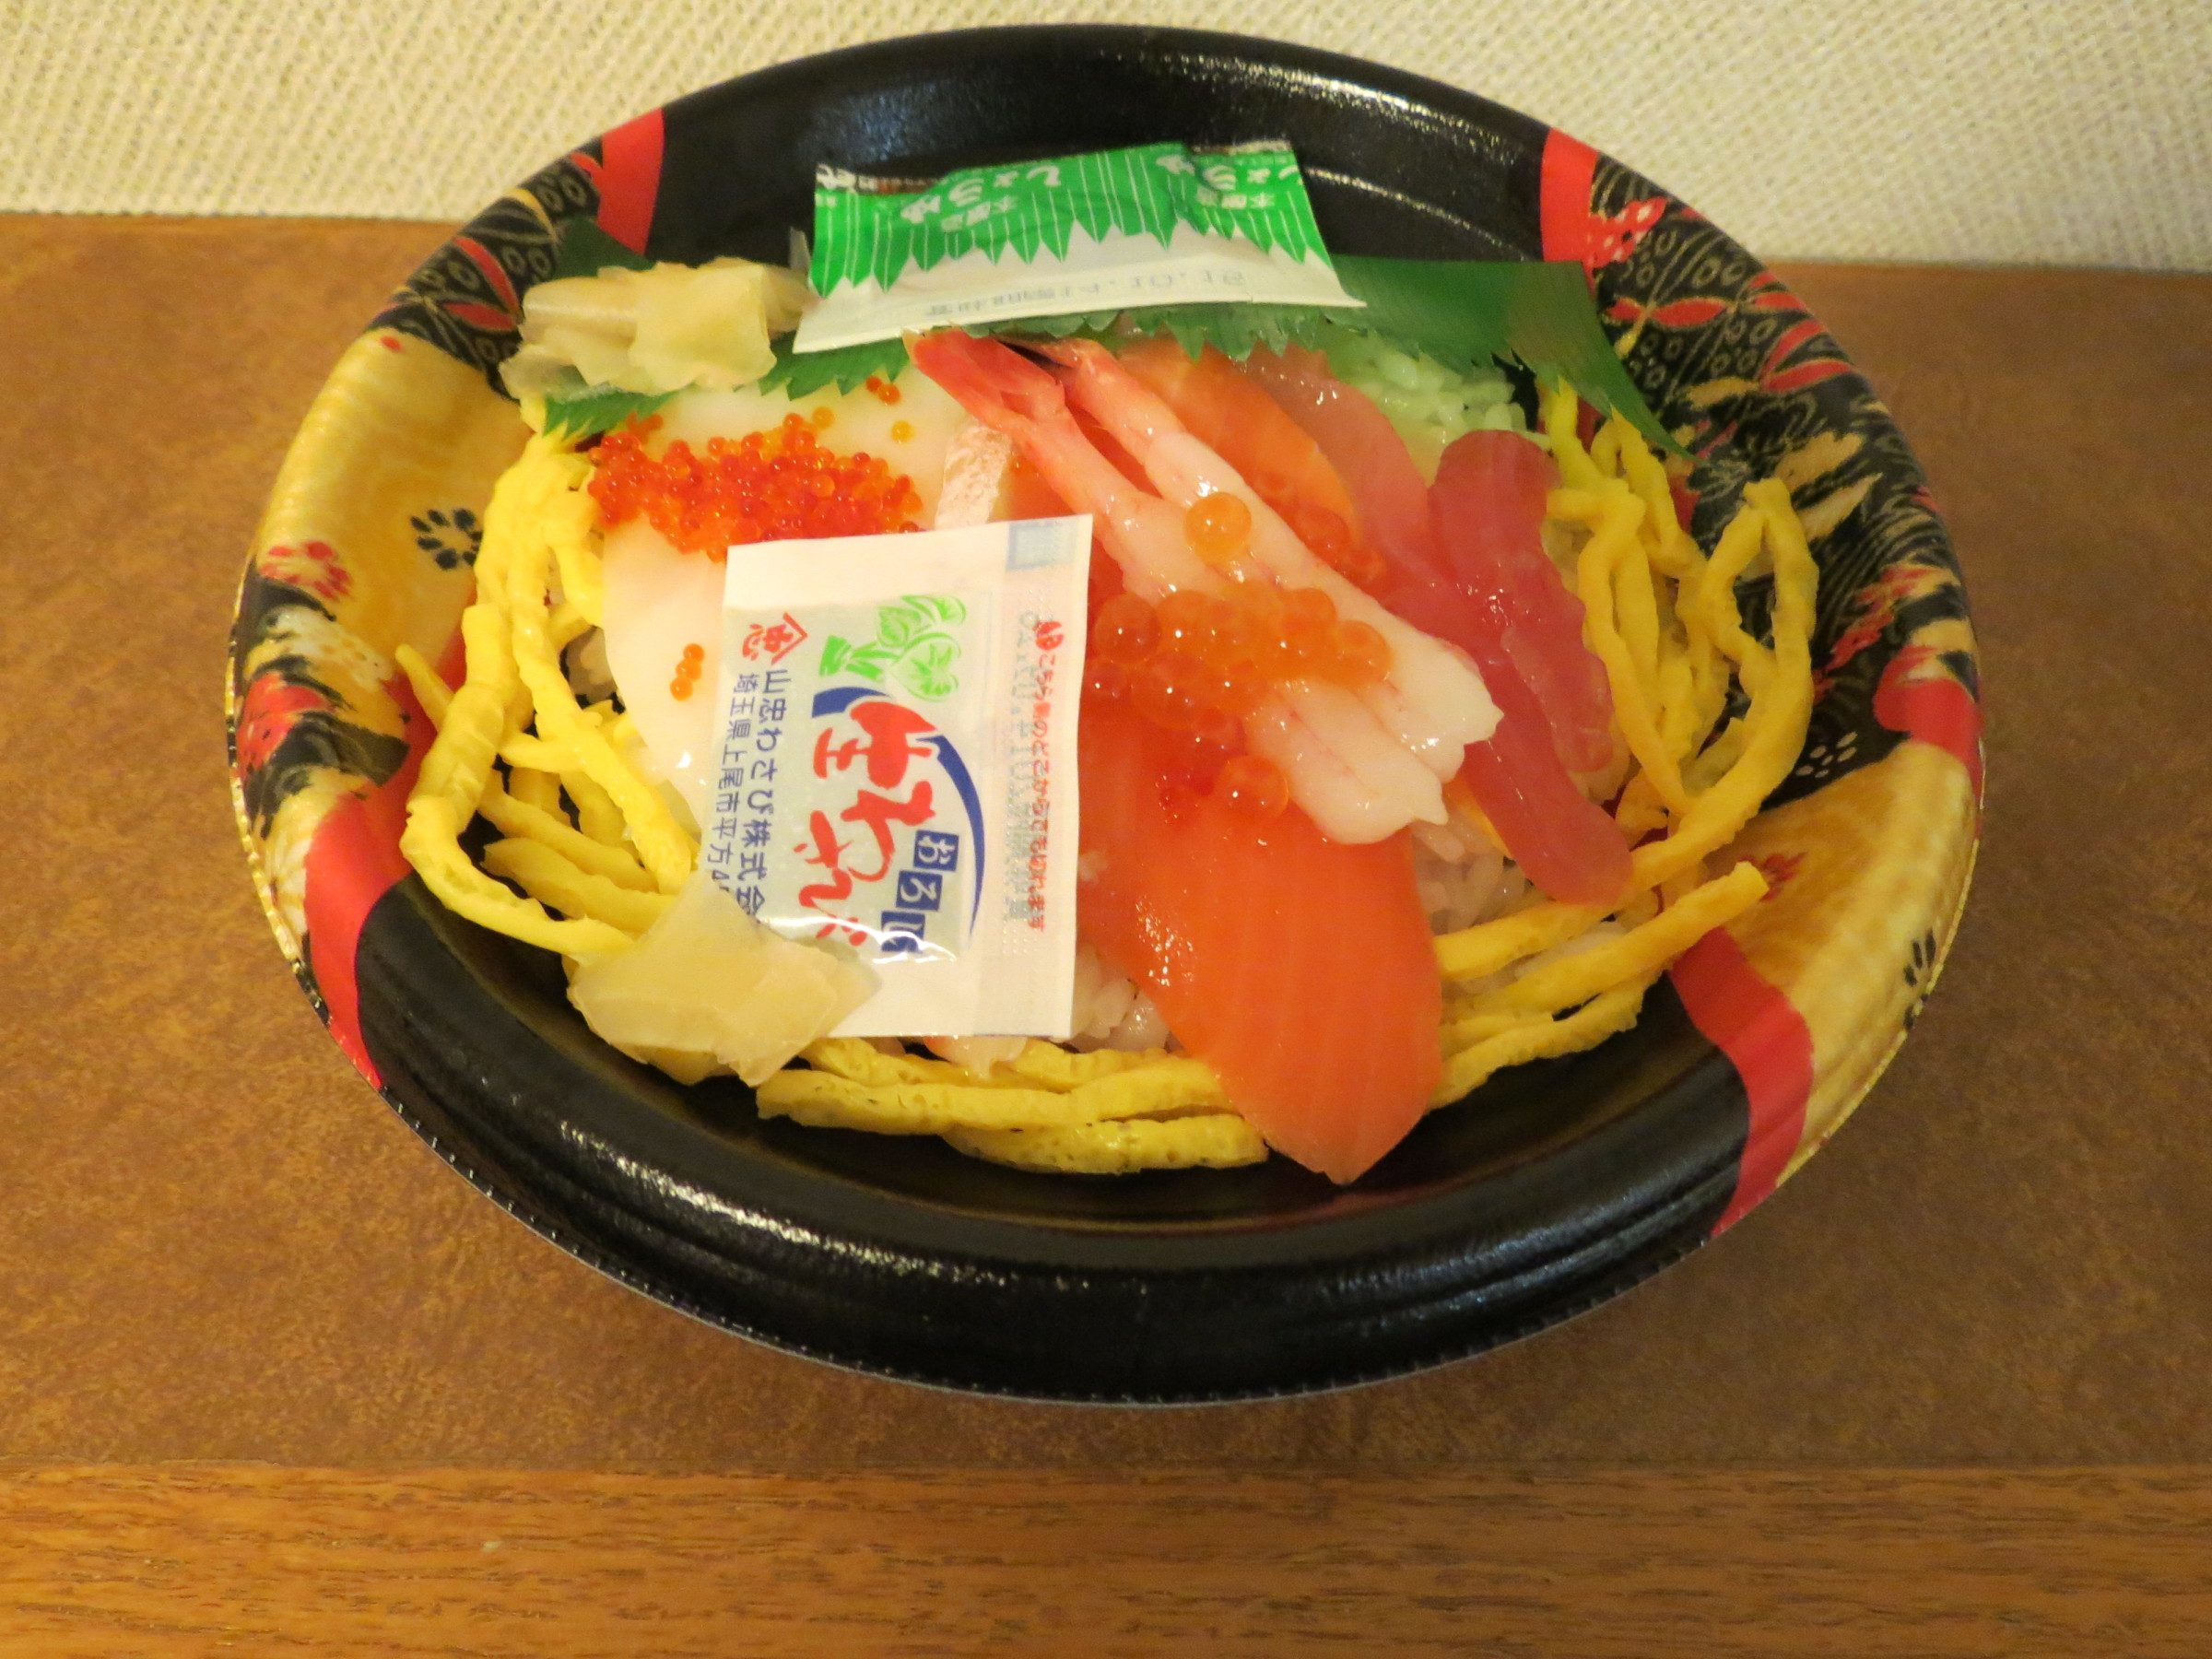 'Chirashi-zushi' (scattered sushi) from the convenience store